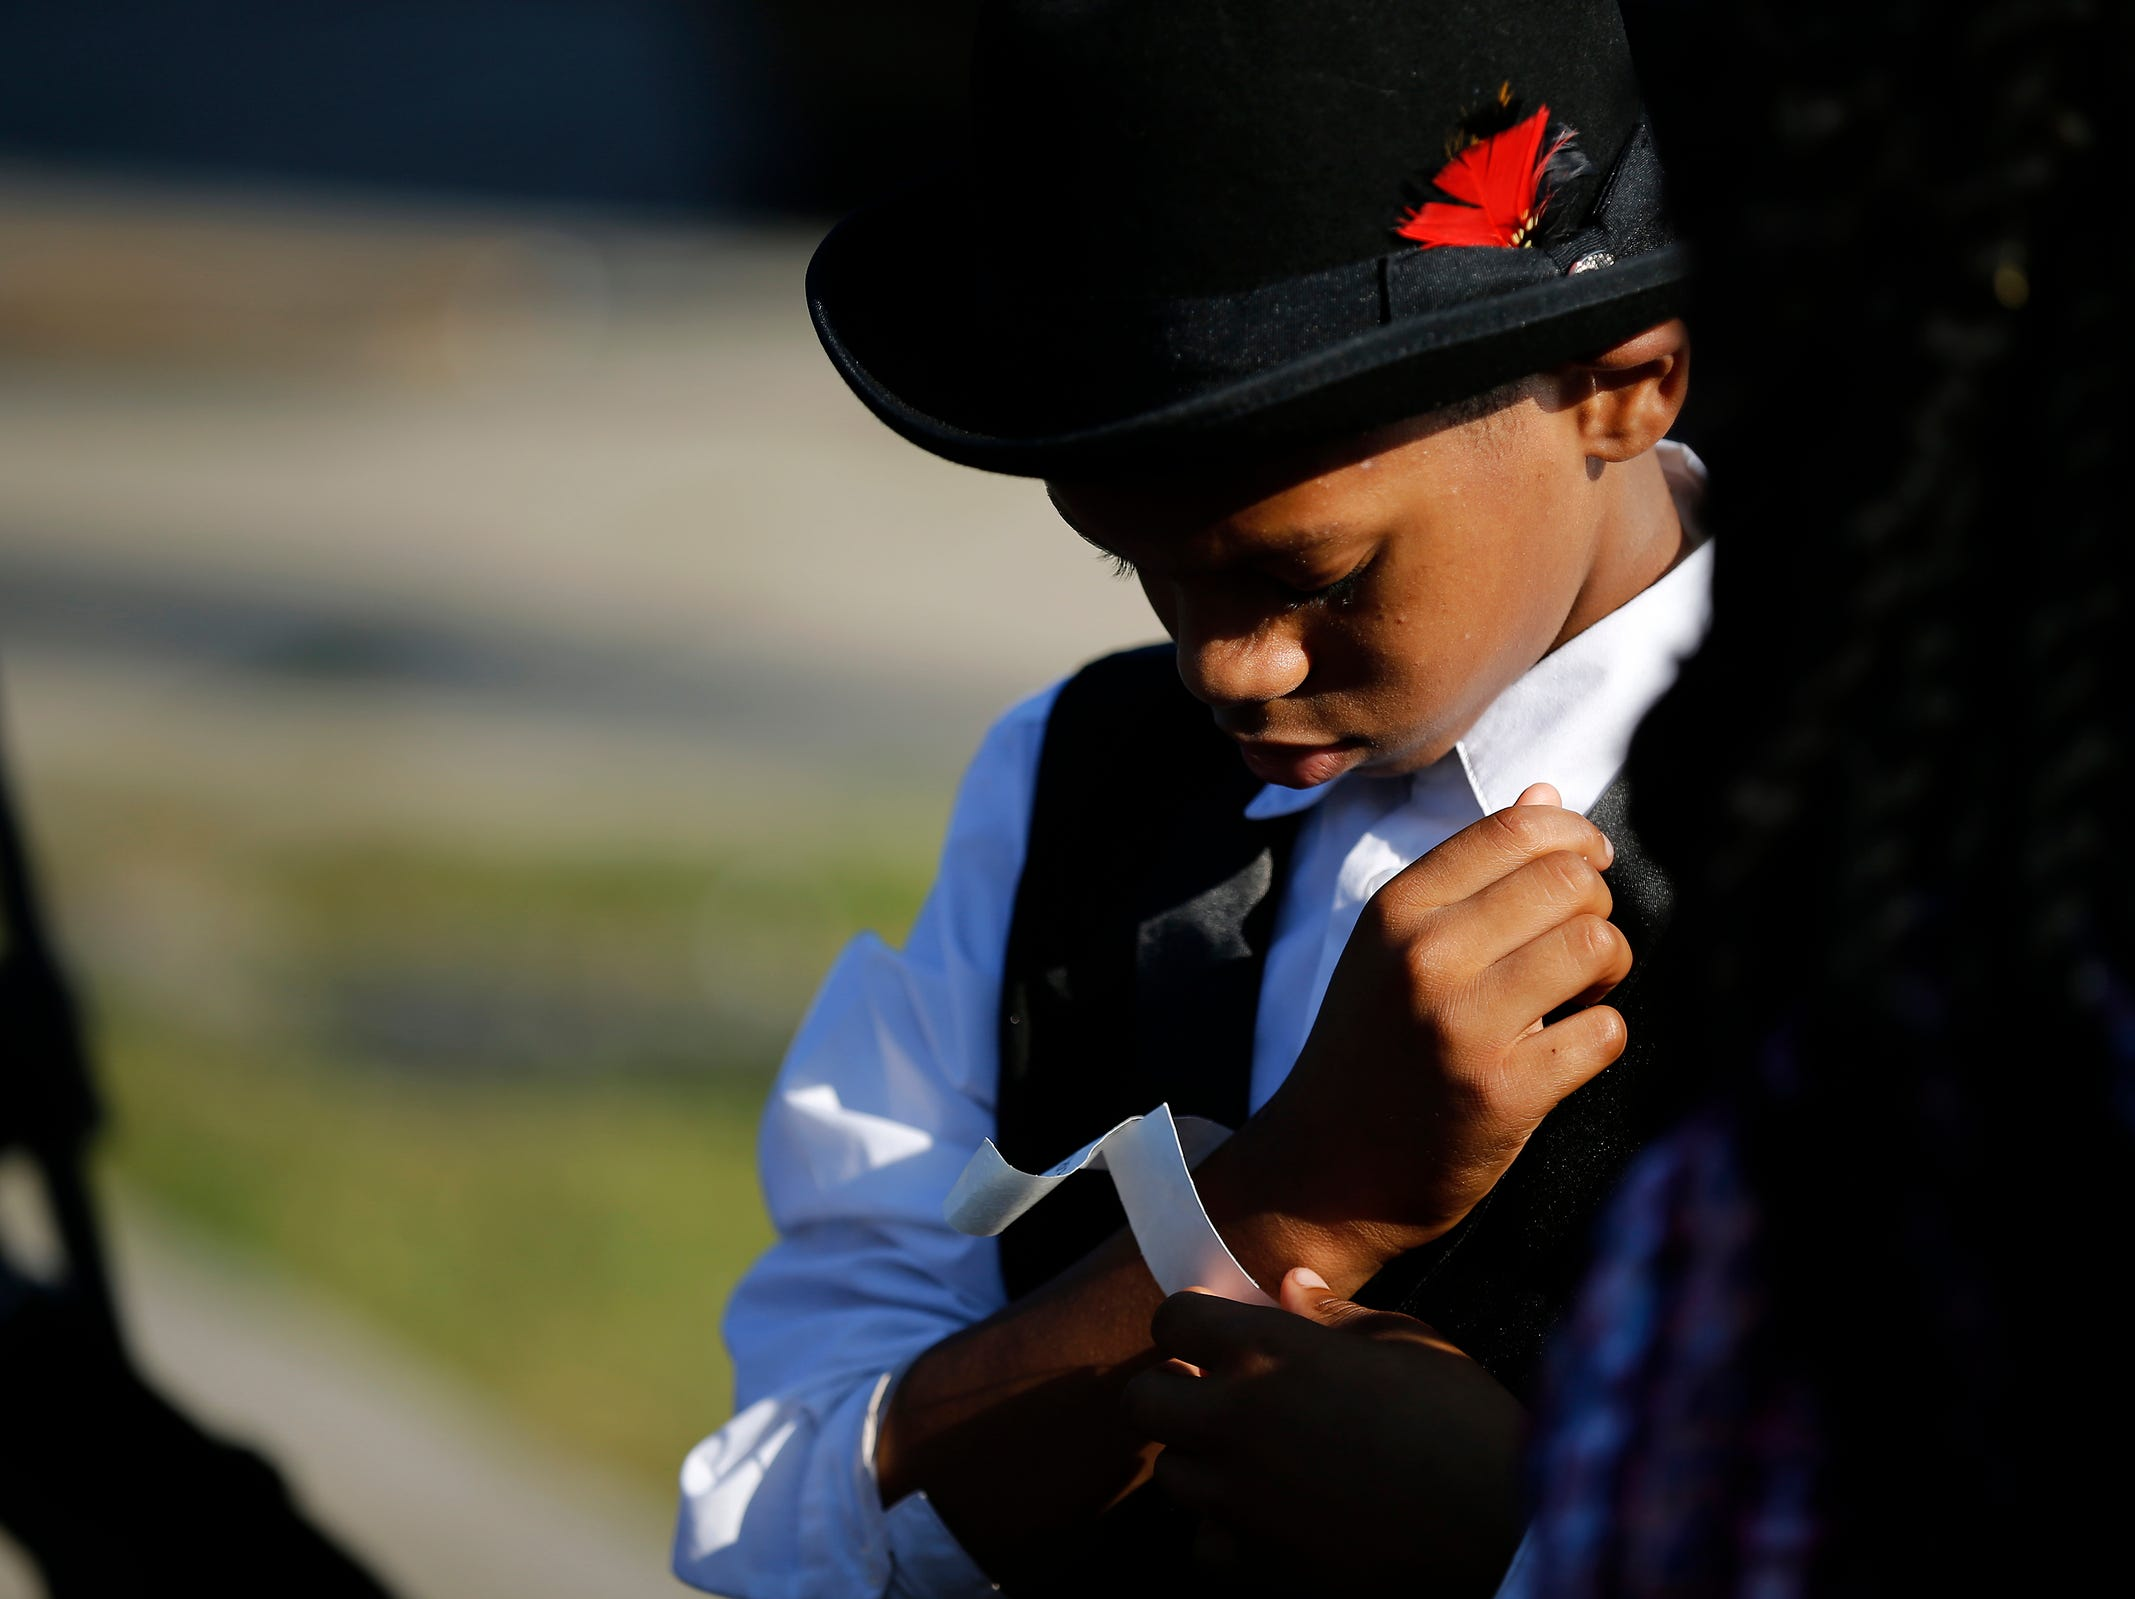 Matthew Smith, 10, wraps a wrist band around his arm before entering the Greater Grace Temple for the funeral of Aretha Franklin in Detroit on Friday, Aug. 31, 2018.